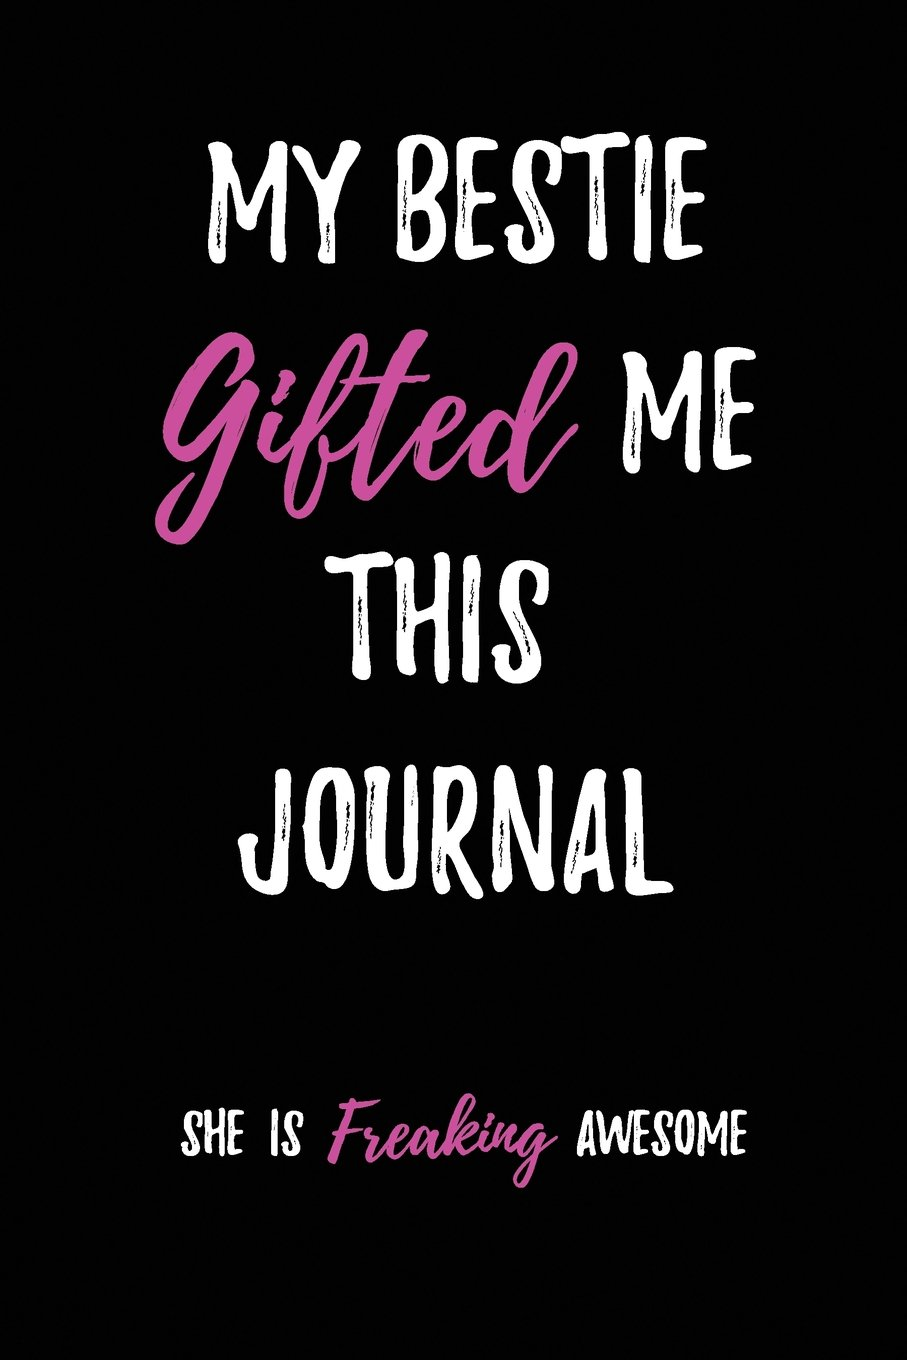 My Bestie Gifted me this Journal-She is freaking Awesome: Blank Lined Journal 6x9 - Perfect & Funny Gift for Best Friend PDF